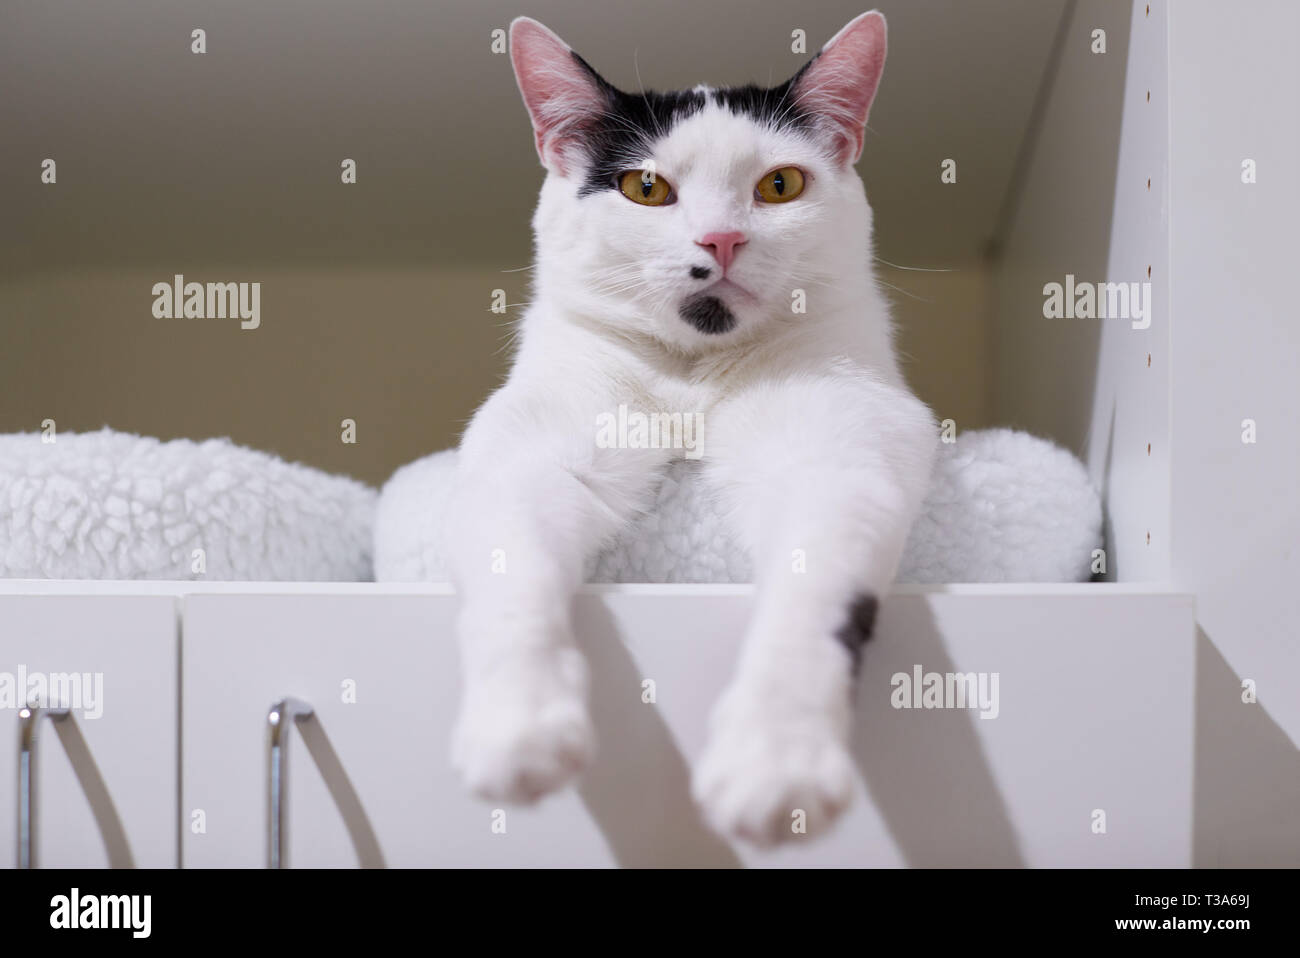 A white cat with black markings on his face and head is relaxing on a shelf in a book case - Stock Image